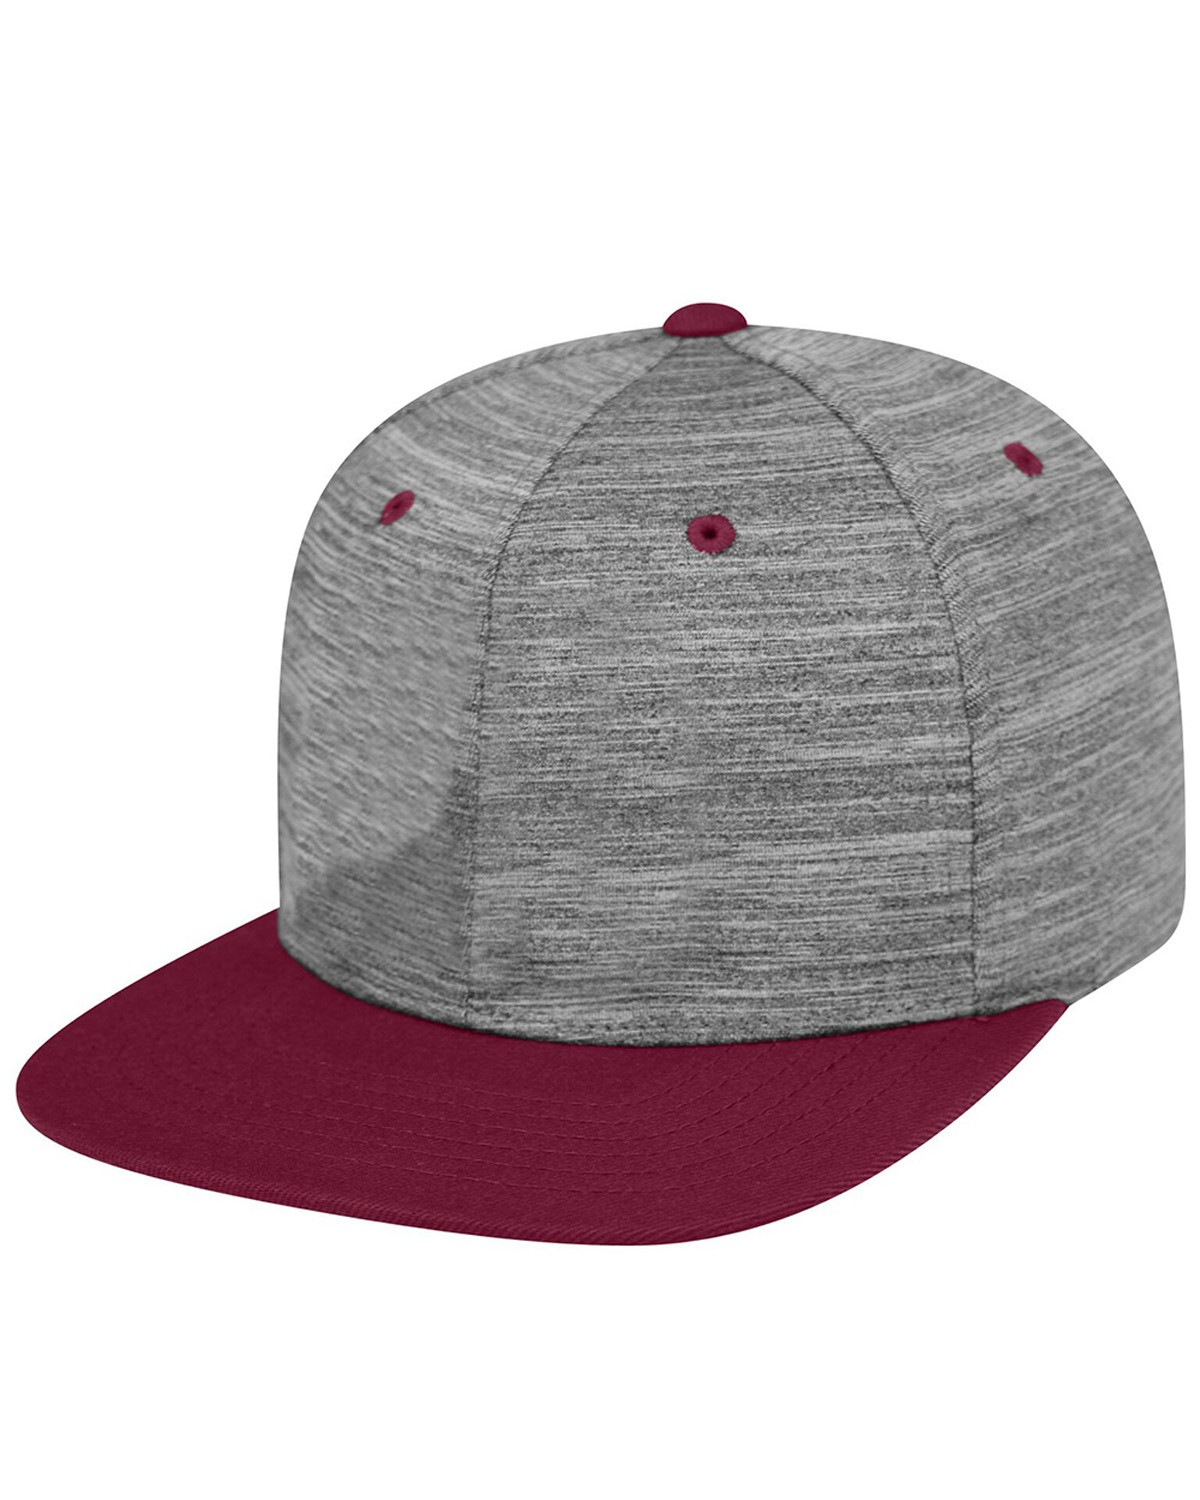 TW5509 Top Of The World BURGUNDY